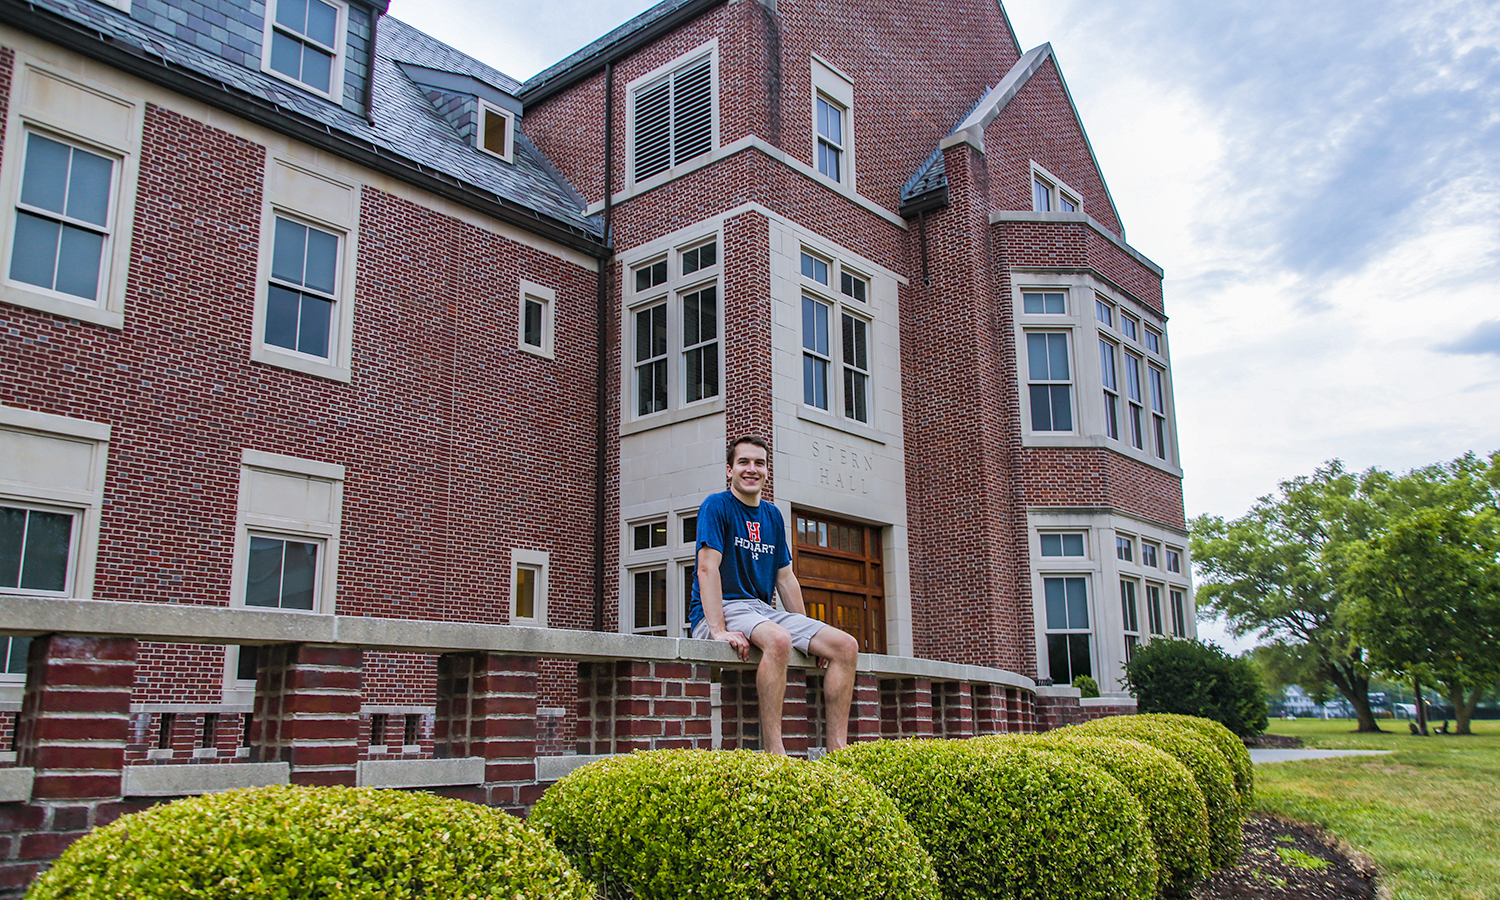 Jack Sherwood '19 is on campus this summer doing research with Professor Stennett in the Chemistry Department. He is pictured sitting in front of his favourite building on campus, Stern Hall. He enjoys studing there becuase it is often less crowded then the library during finals.